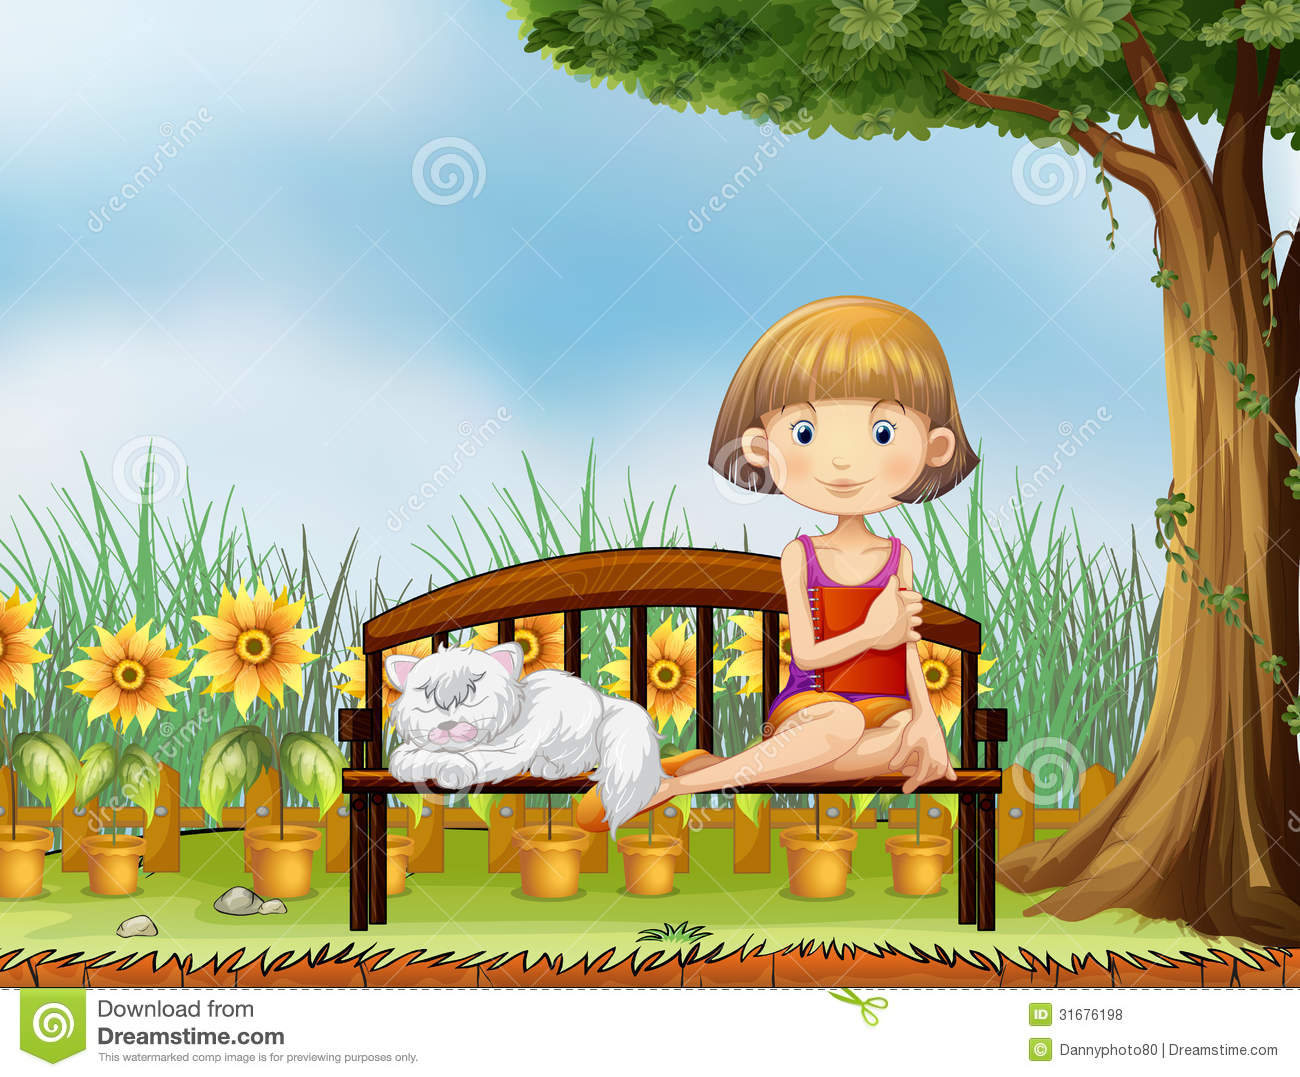 Garden doll stock image image 10613001 - Garden Doll Stock Image Image 10613001 A Girl With A Cat In The Garden Royalty Download